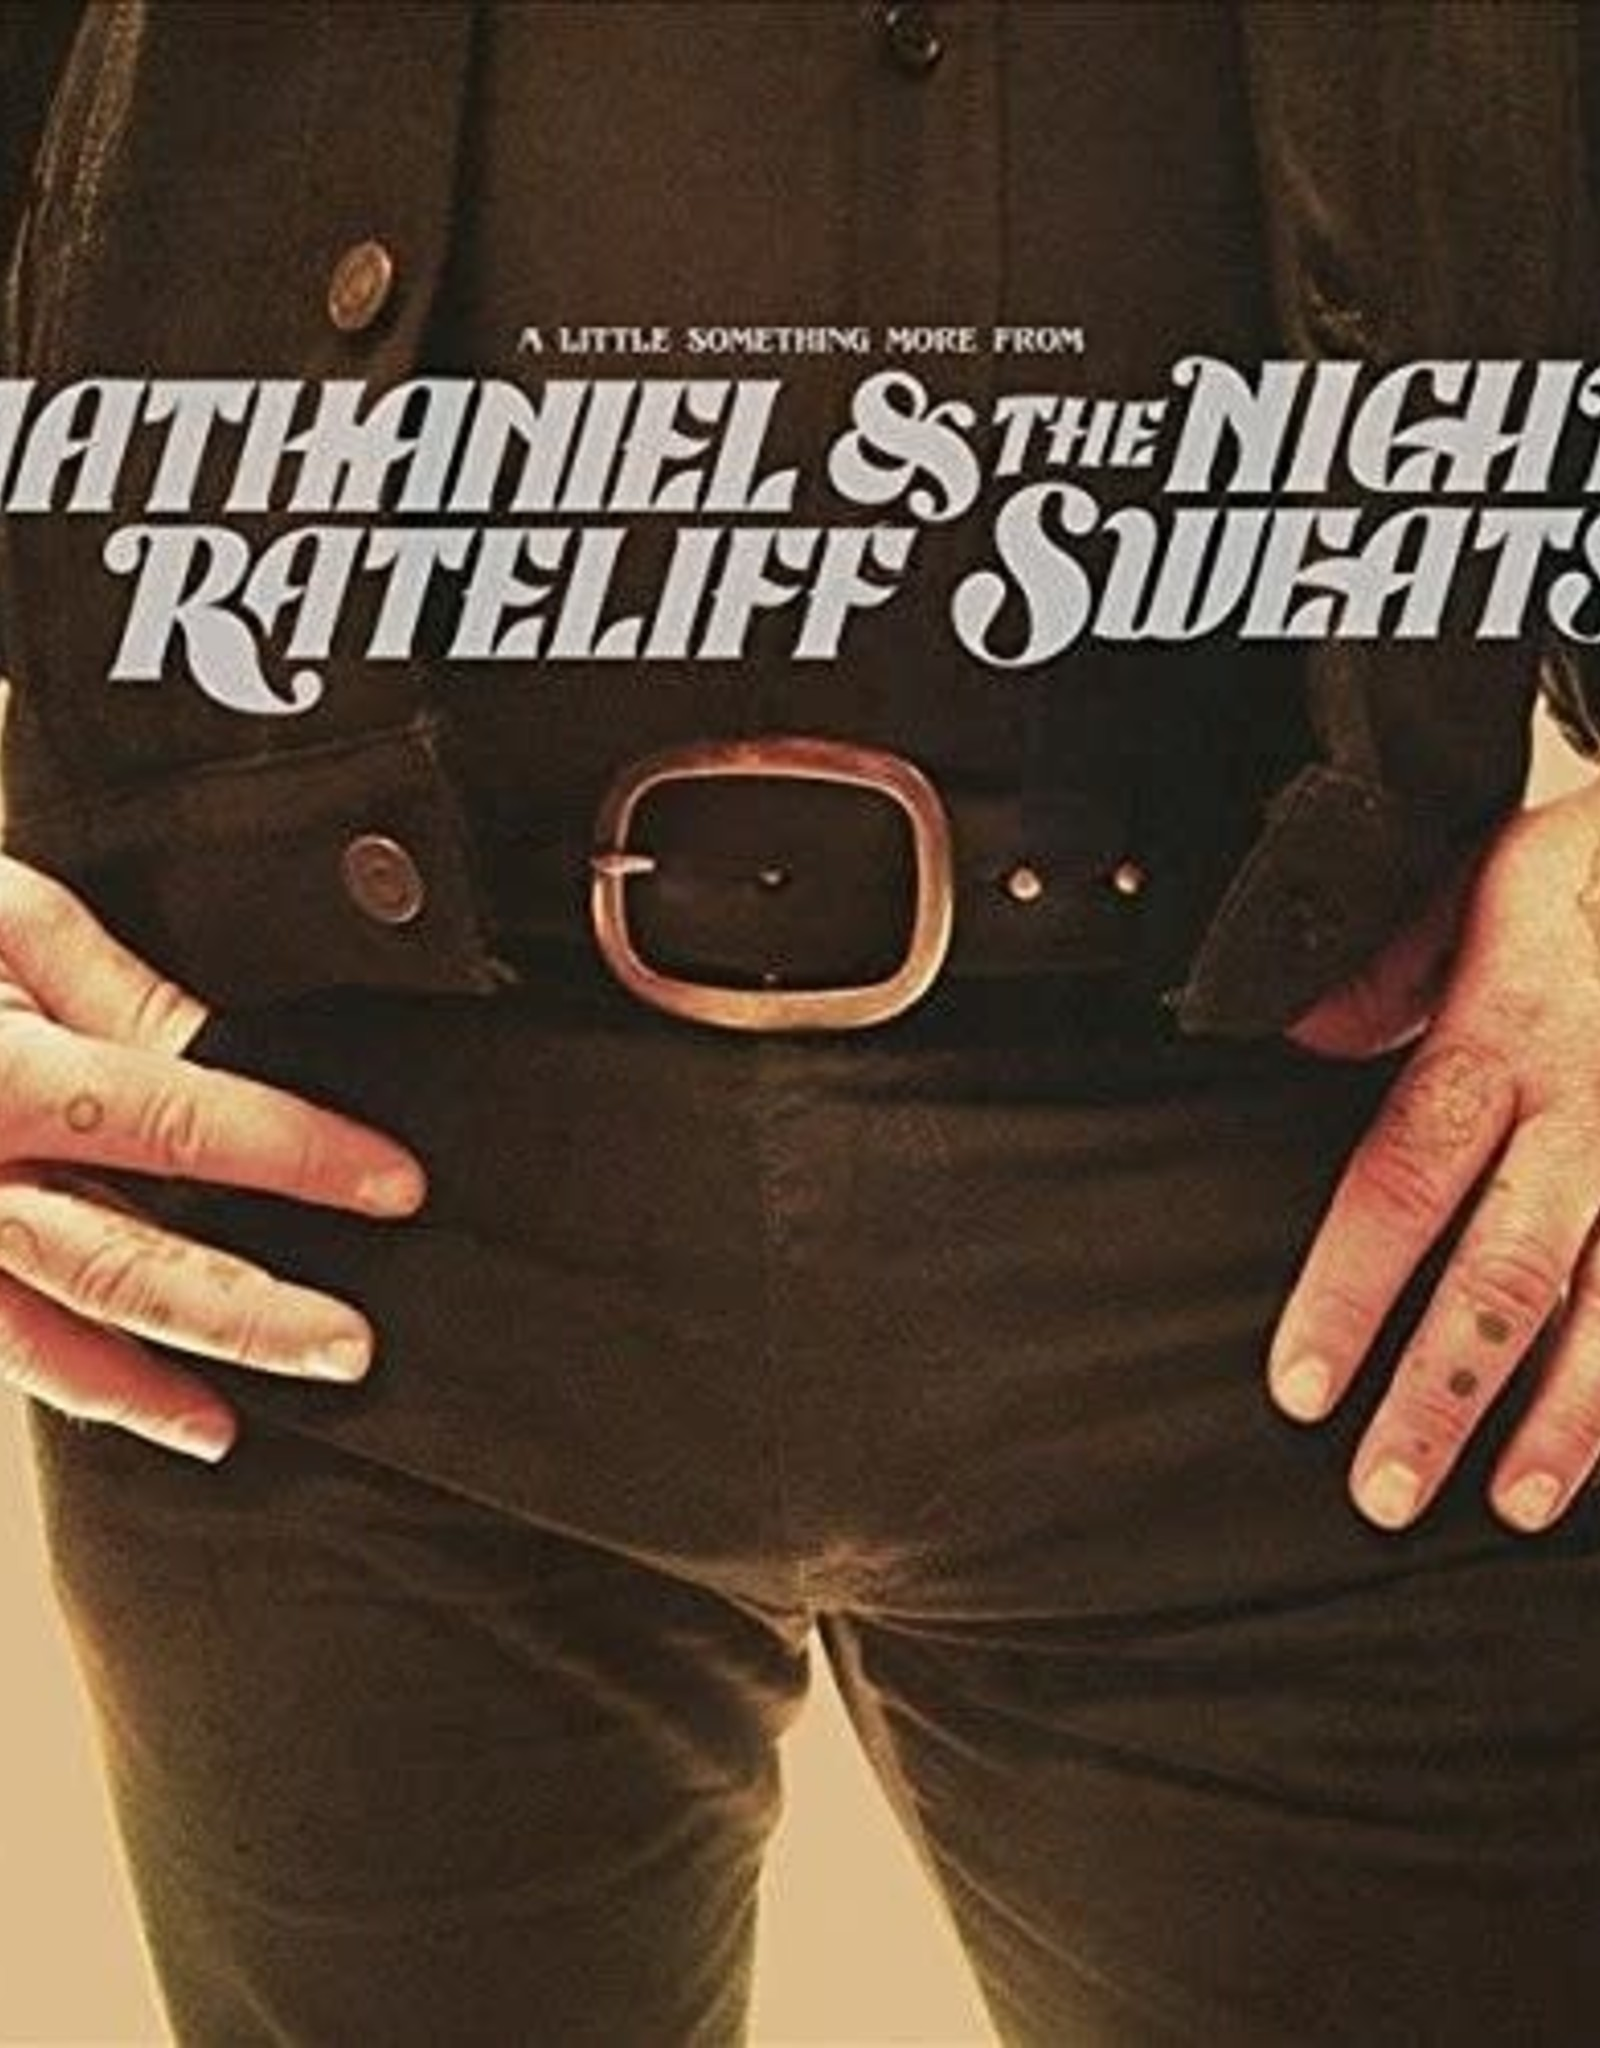 Nathaniel Rateliff & the Night Sweats - a Little Something More From